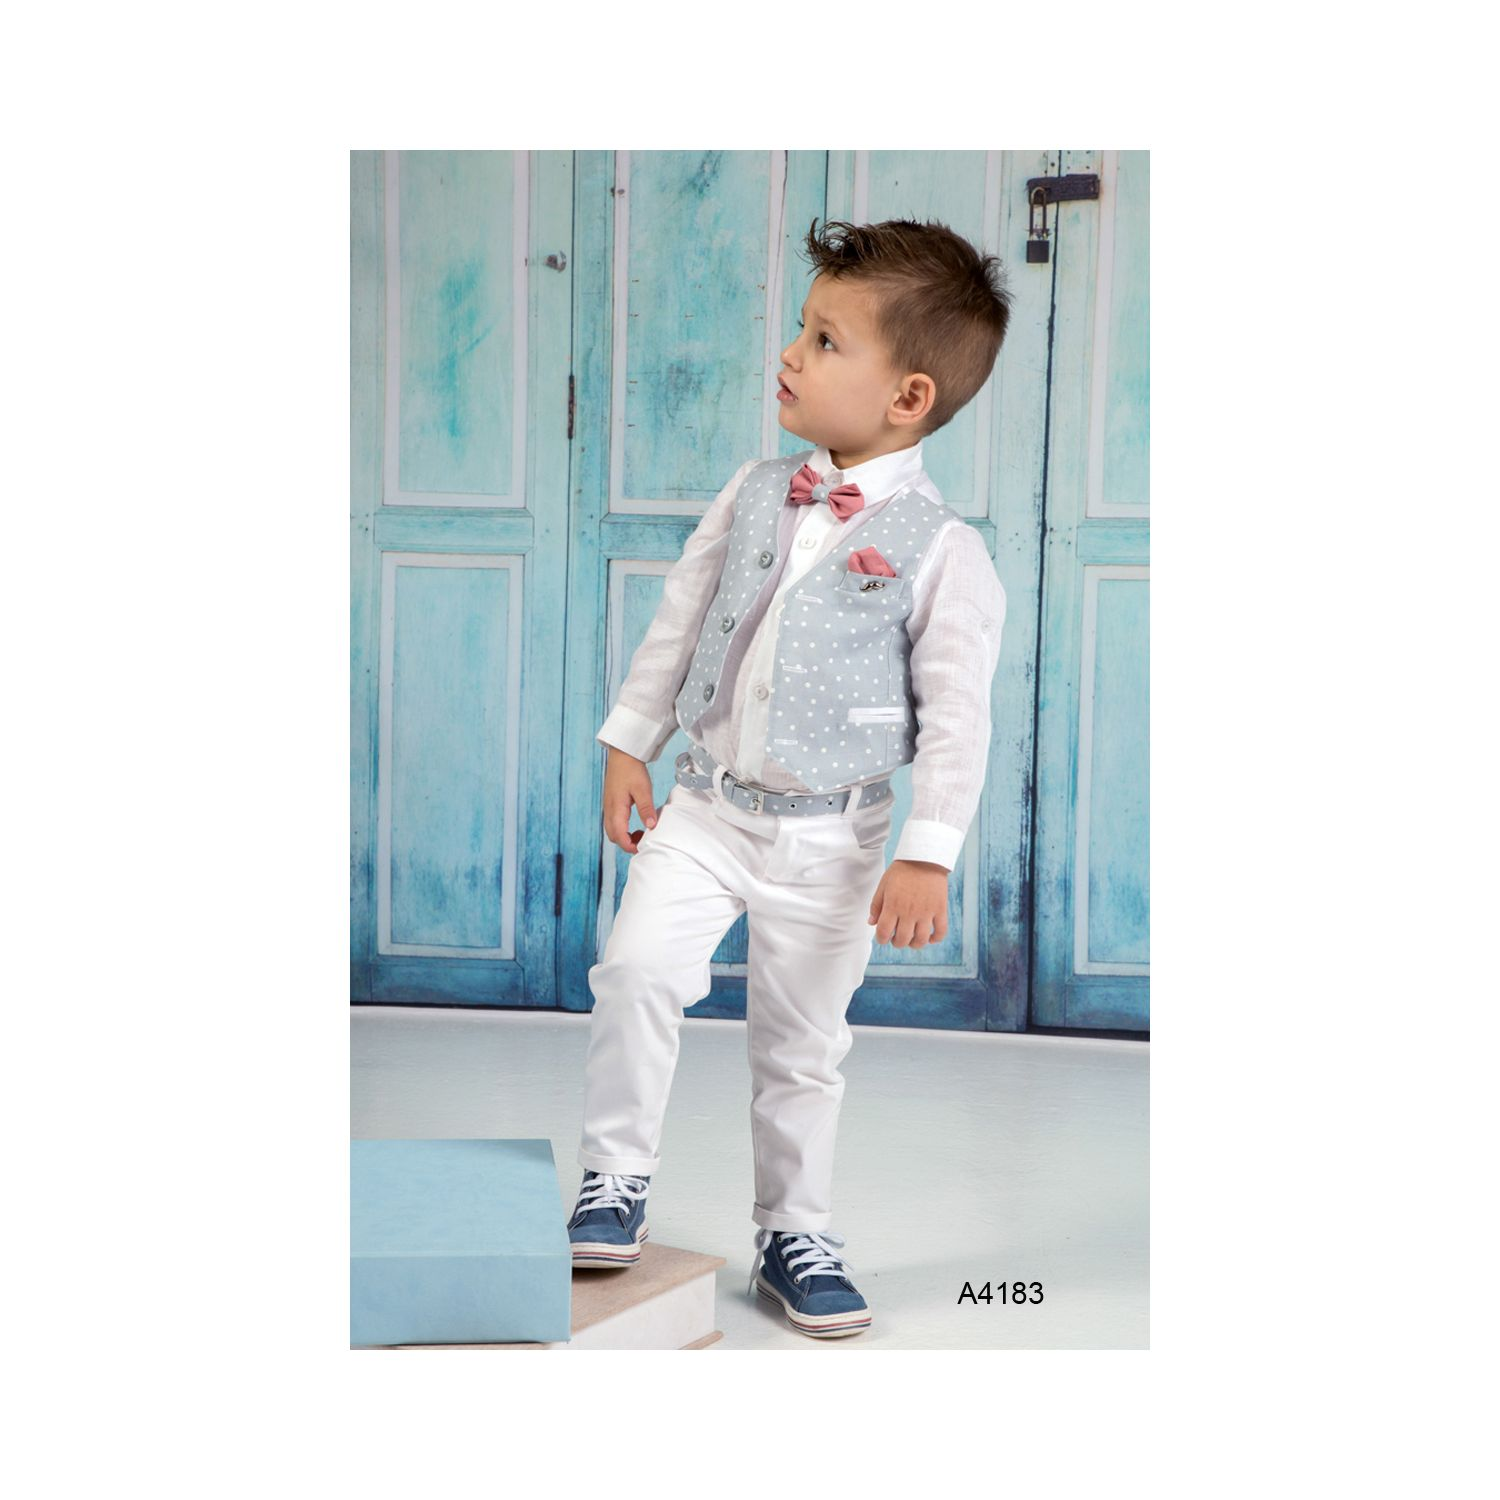 Summer baptism clothes for boys A4183